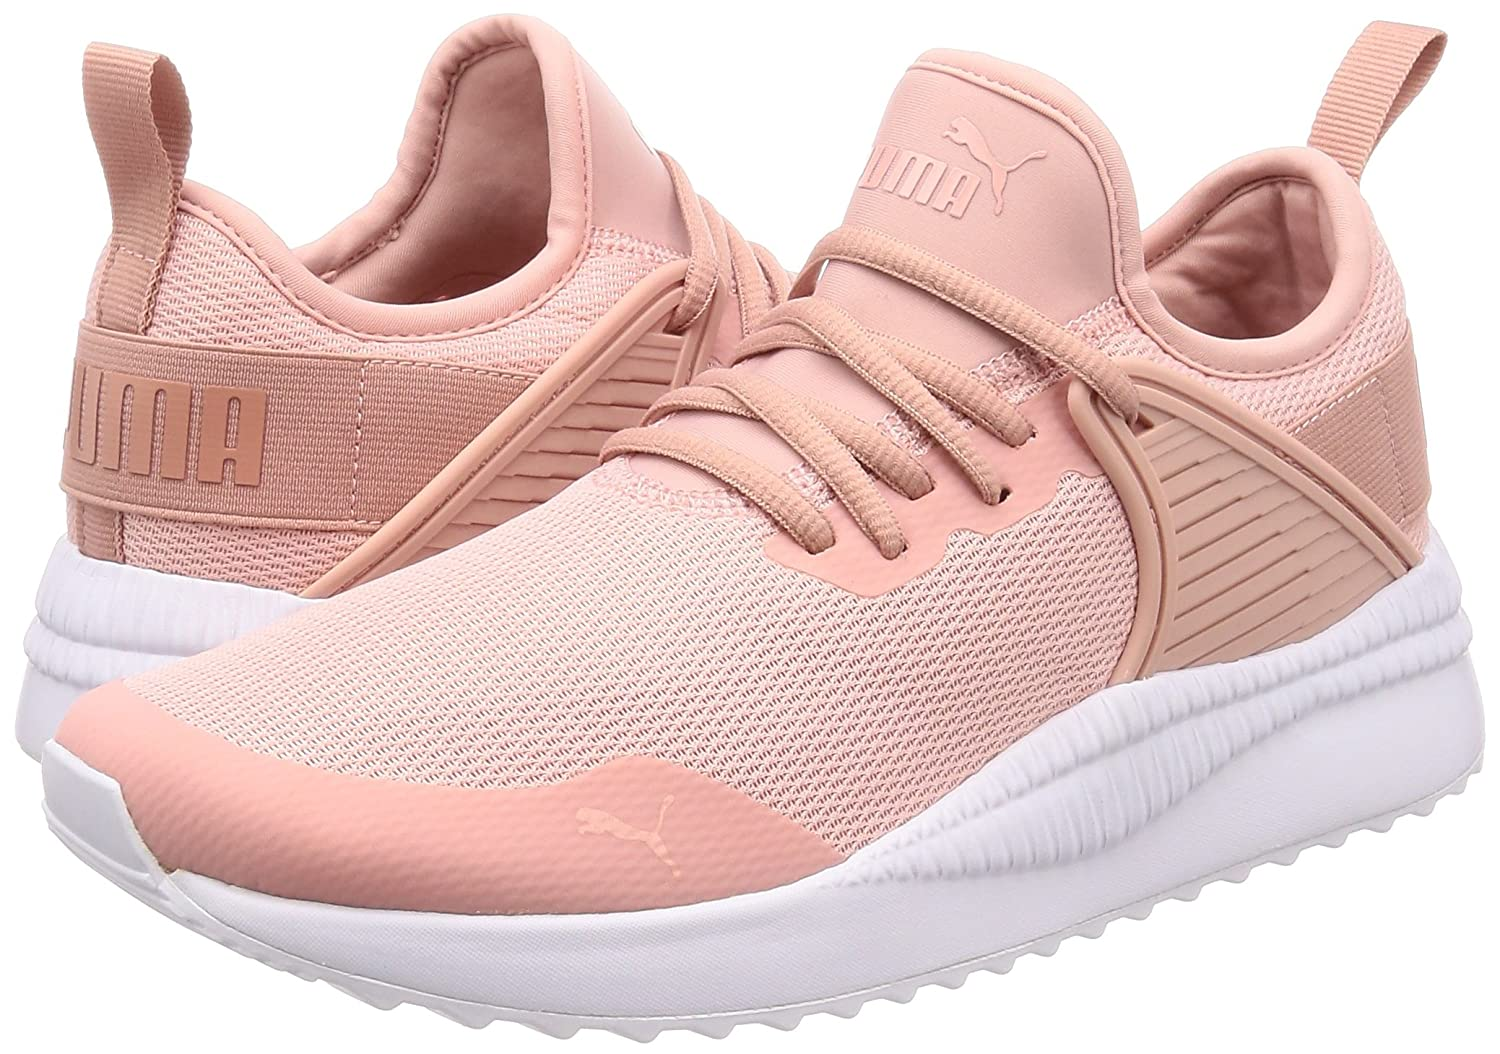 Puma Unisex-Erwachsene Pacer Next CAGE CAGE CAGE Turnschuhe  6866fa